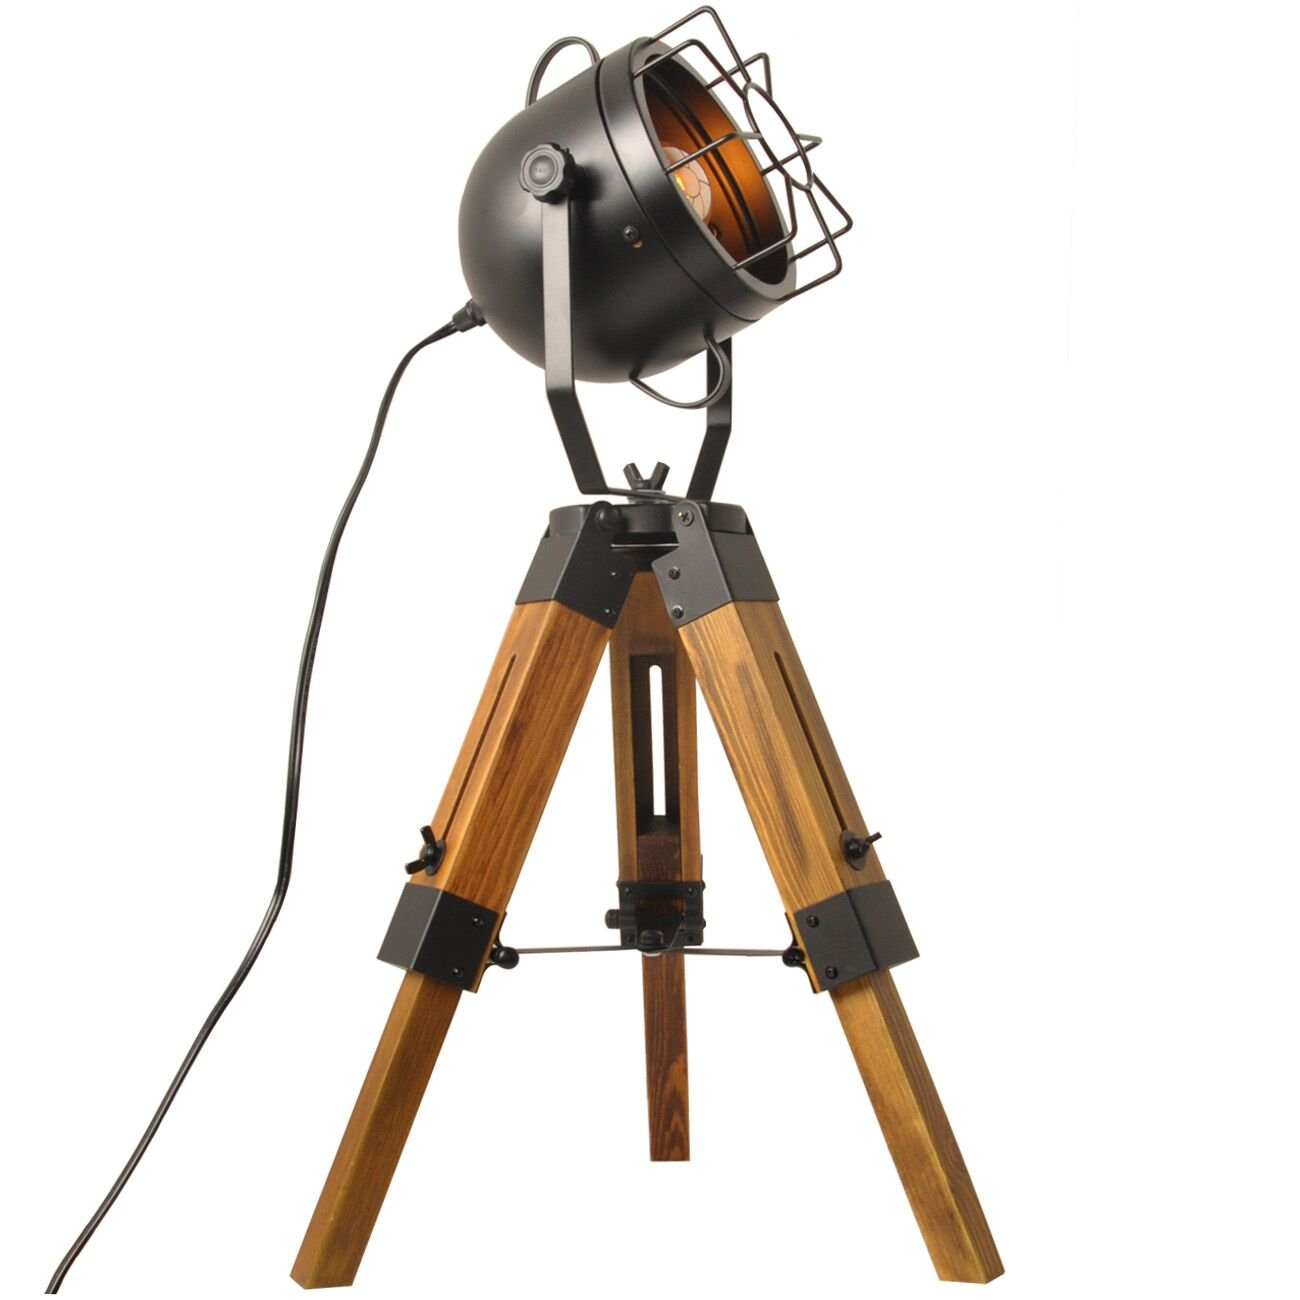 quality design 4b53c 91675 Decoluce Industrial Vintage Floor Table Tripod Lamps,Wooden Stand Lamp  Black ,Antique Home Decor Searchlight Floor Lamp,Mini Tripod Light-Without  ...